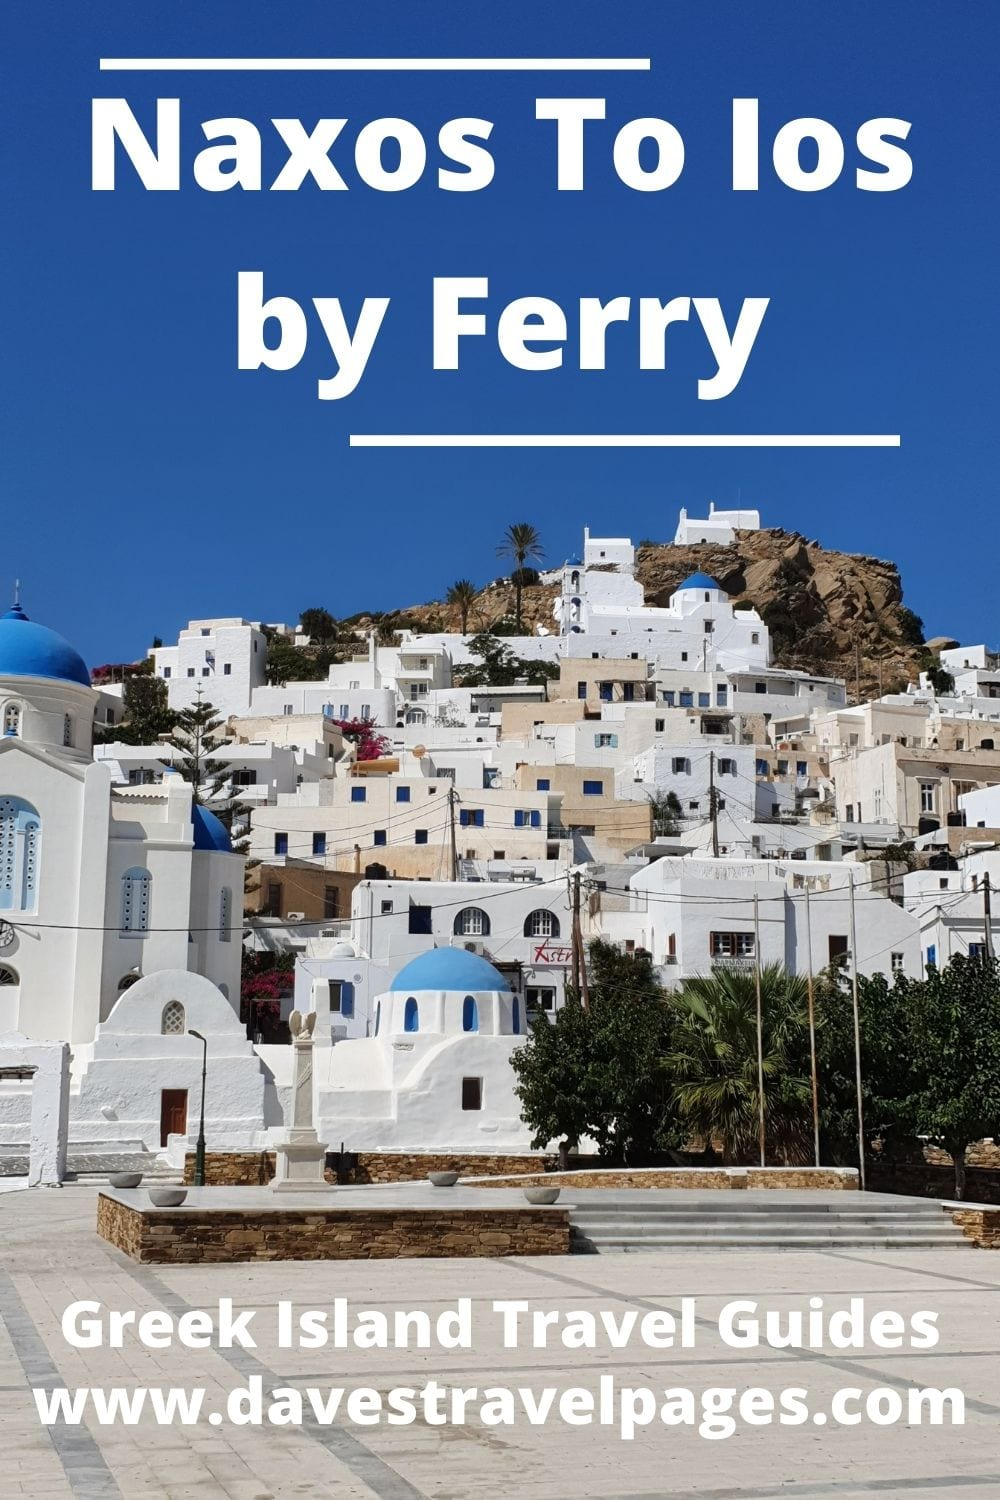 Naxos to Ios Ferry guide and travel information